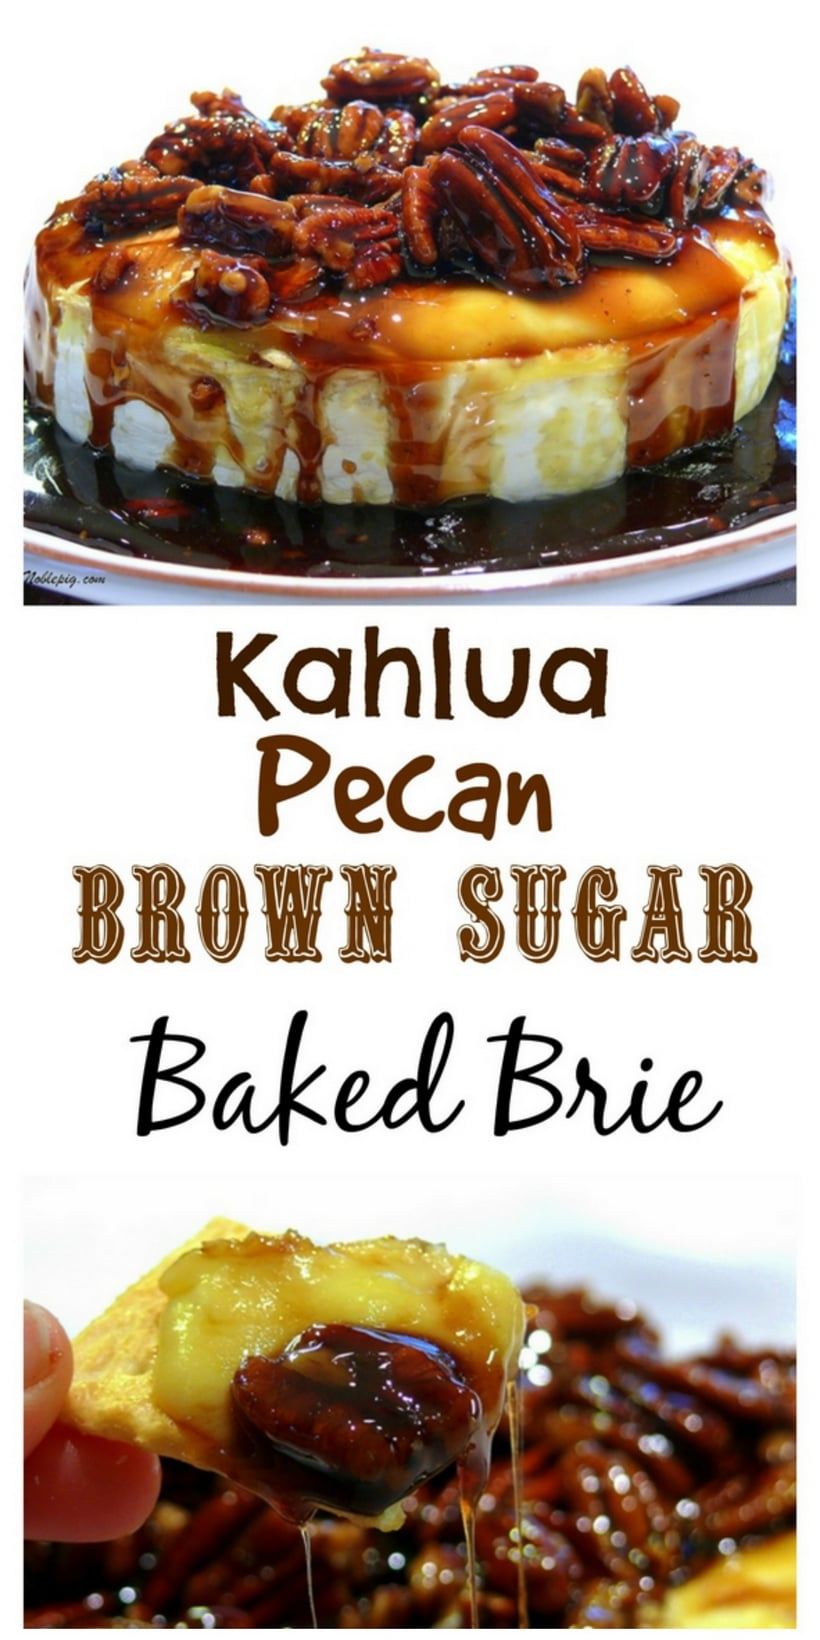 This Kahlua-Pecan-Brown Sugar Baked Brie is going to rock your next party, gathering or celebration. The brie comes out of the oven gooey and oozing and awaiting it's sweet and delicious topping. It is a must make any time of the year. #noblepig #kahluapecanbrownsugarbakedbrie #kahluabakedbrie #brie #bakedbrie #holidayappetizer #holidayentertaining #easyholidayappetizer #appetizer #easyrecipe #quickappetizer #holidaypartyappetizer #christmasappetizer #holidayfun #holidayfood  #kahlua   via @cmpollak1